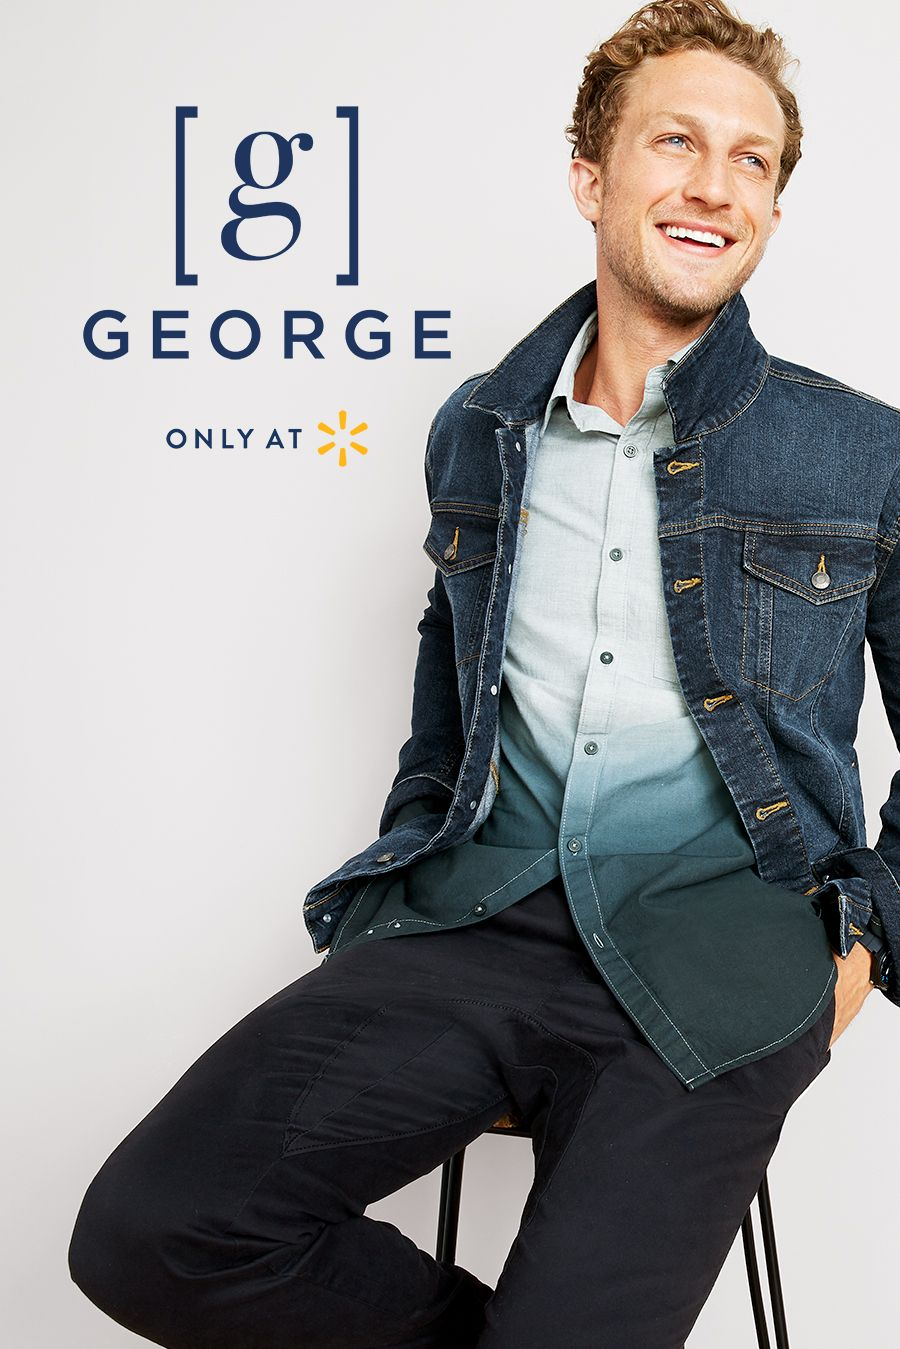 Don T Simply Walk Through A Winter Wonderland When You Can Glide Through The Season In Style With George Our Lon Mens Outfits Mens Spring Fashion Yoga For Men [ 1349 x 900 Pixel ]